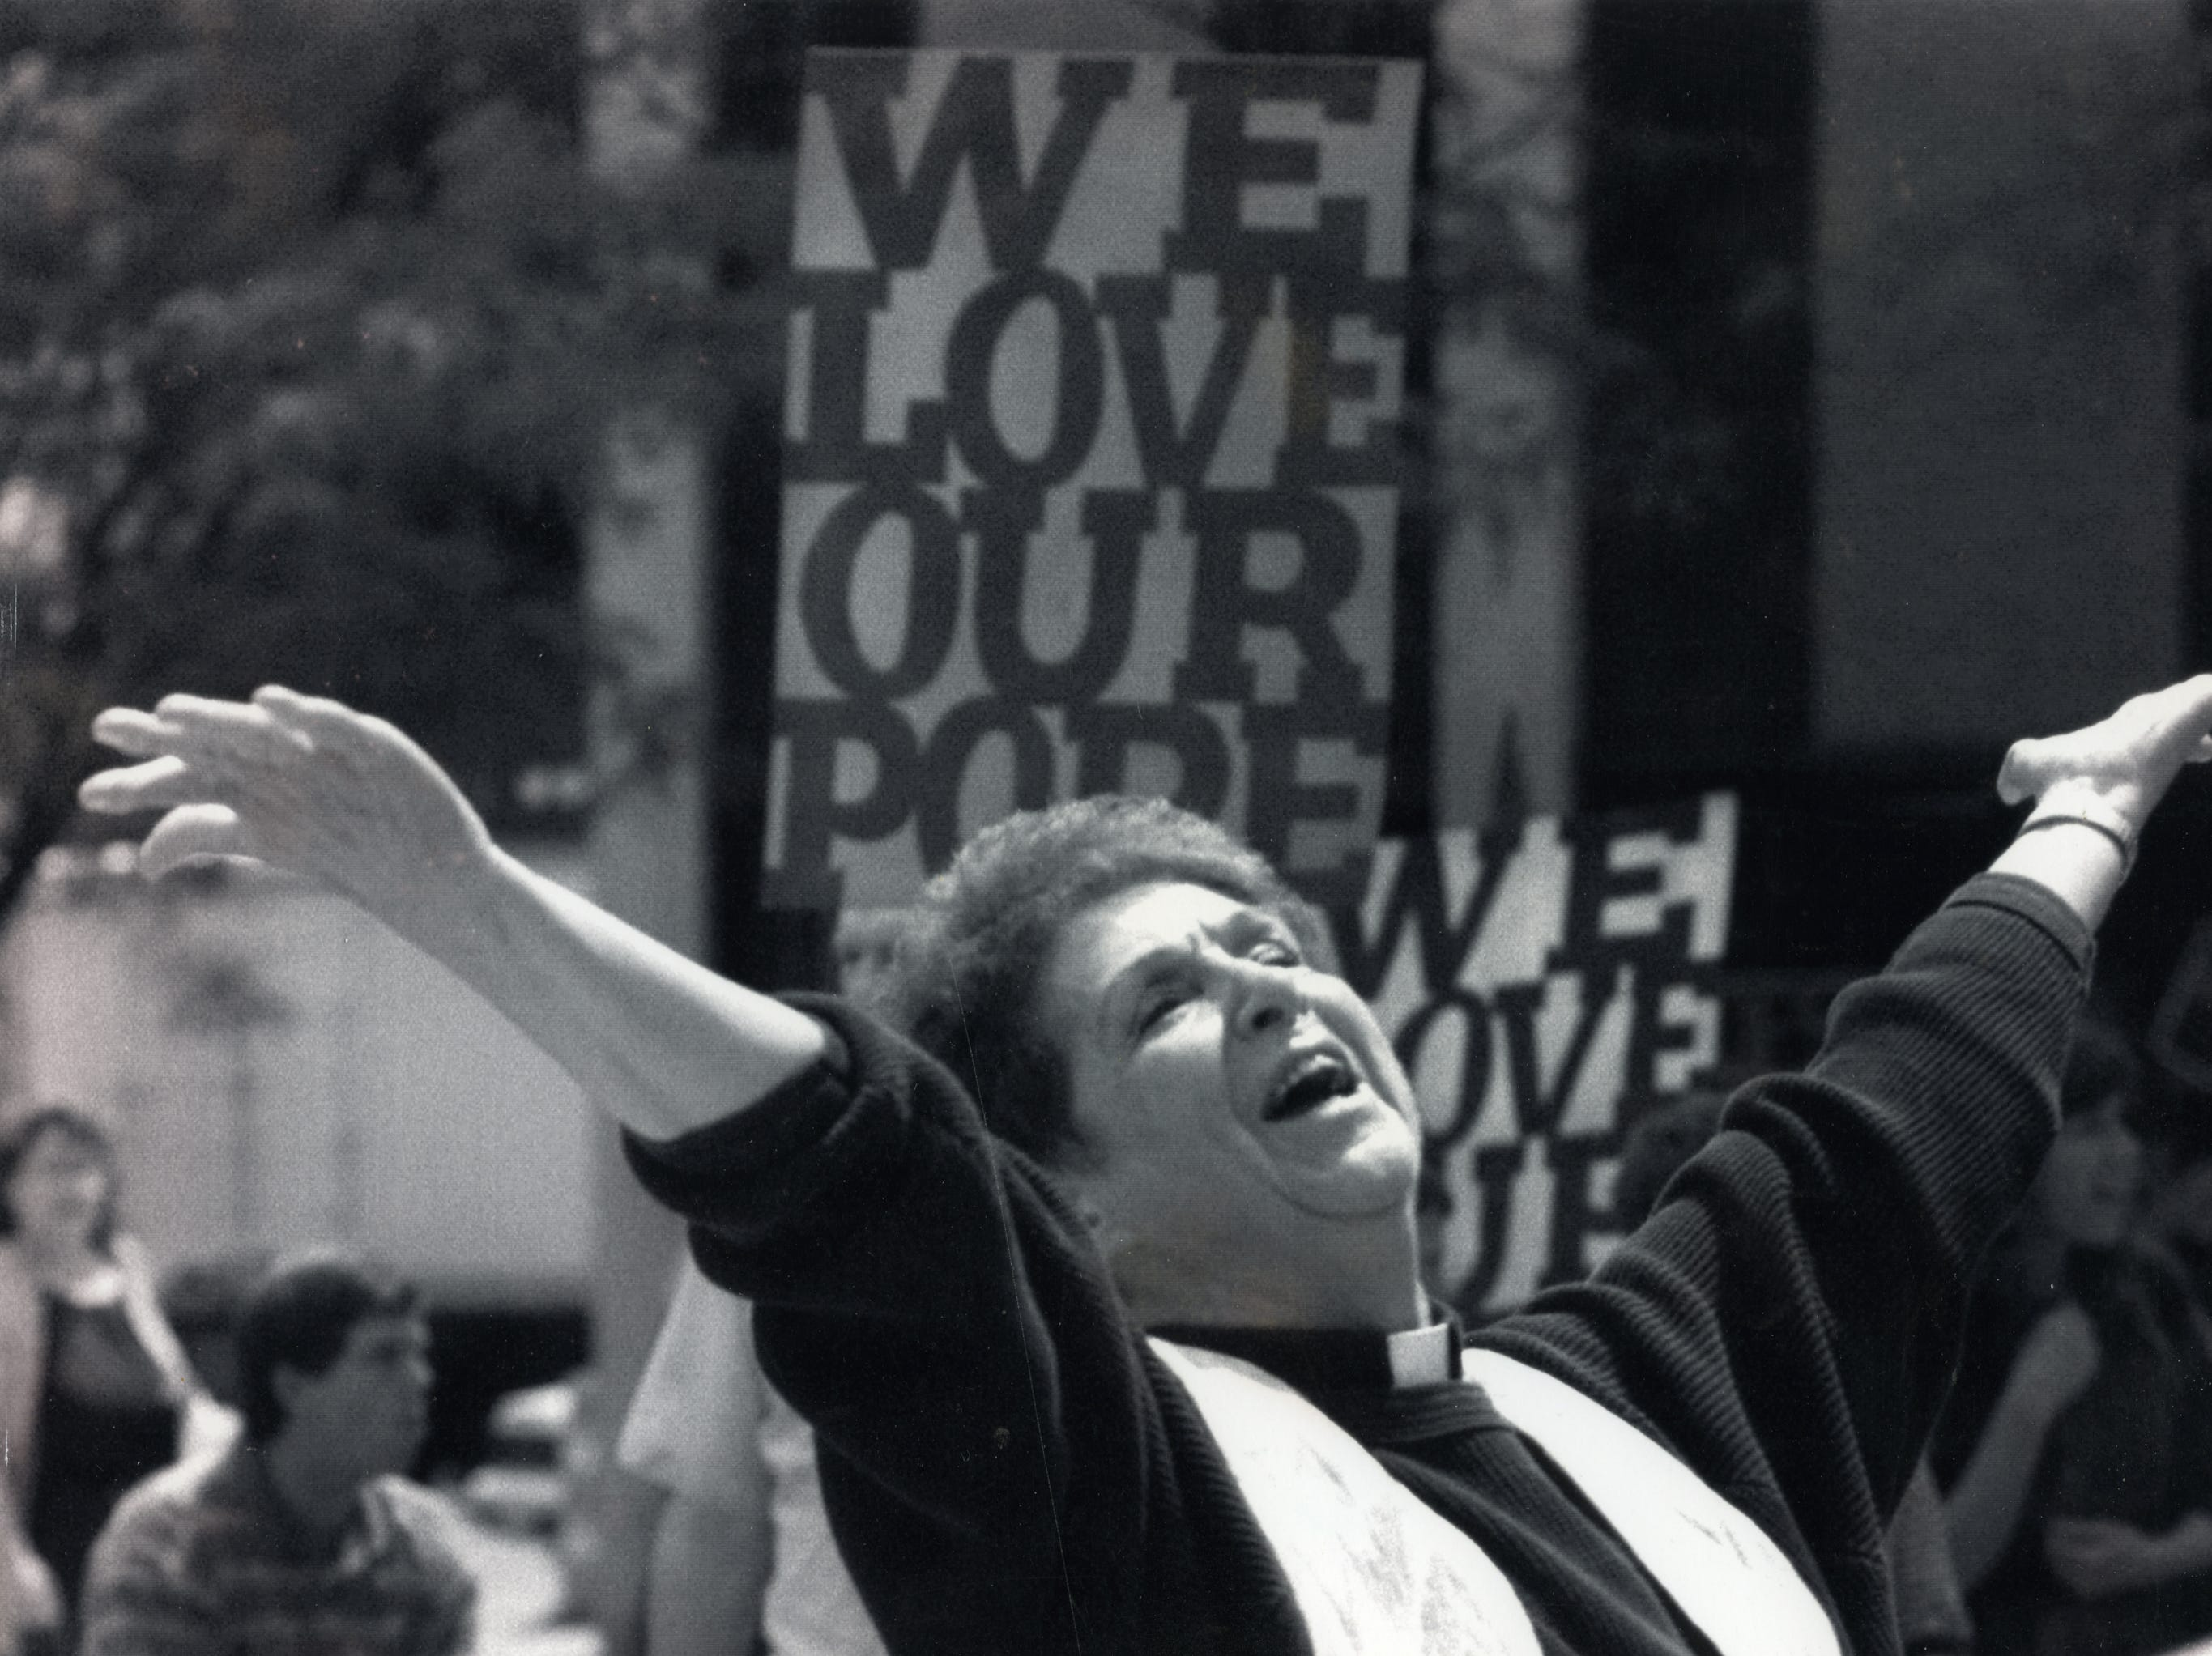 Patricia Donohue of Binghamton, shown in 1994 in front of the Cathedral of Immaculate Conception in Syracuse in 1994, doing a one-woman show called Solo Flight. She was there with a group of women called Sarah's Circle who sought equality within the Catholic Church. Many people protested while Donohue performed.